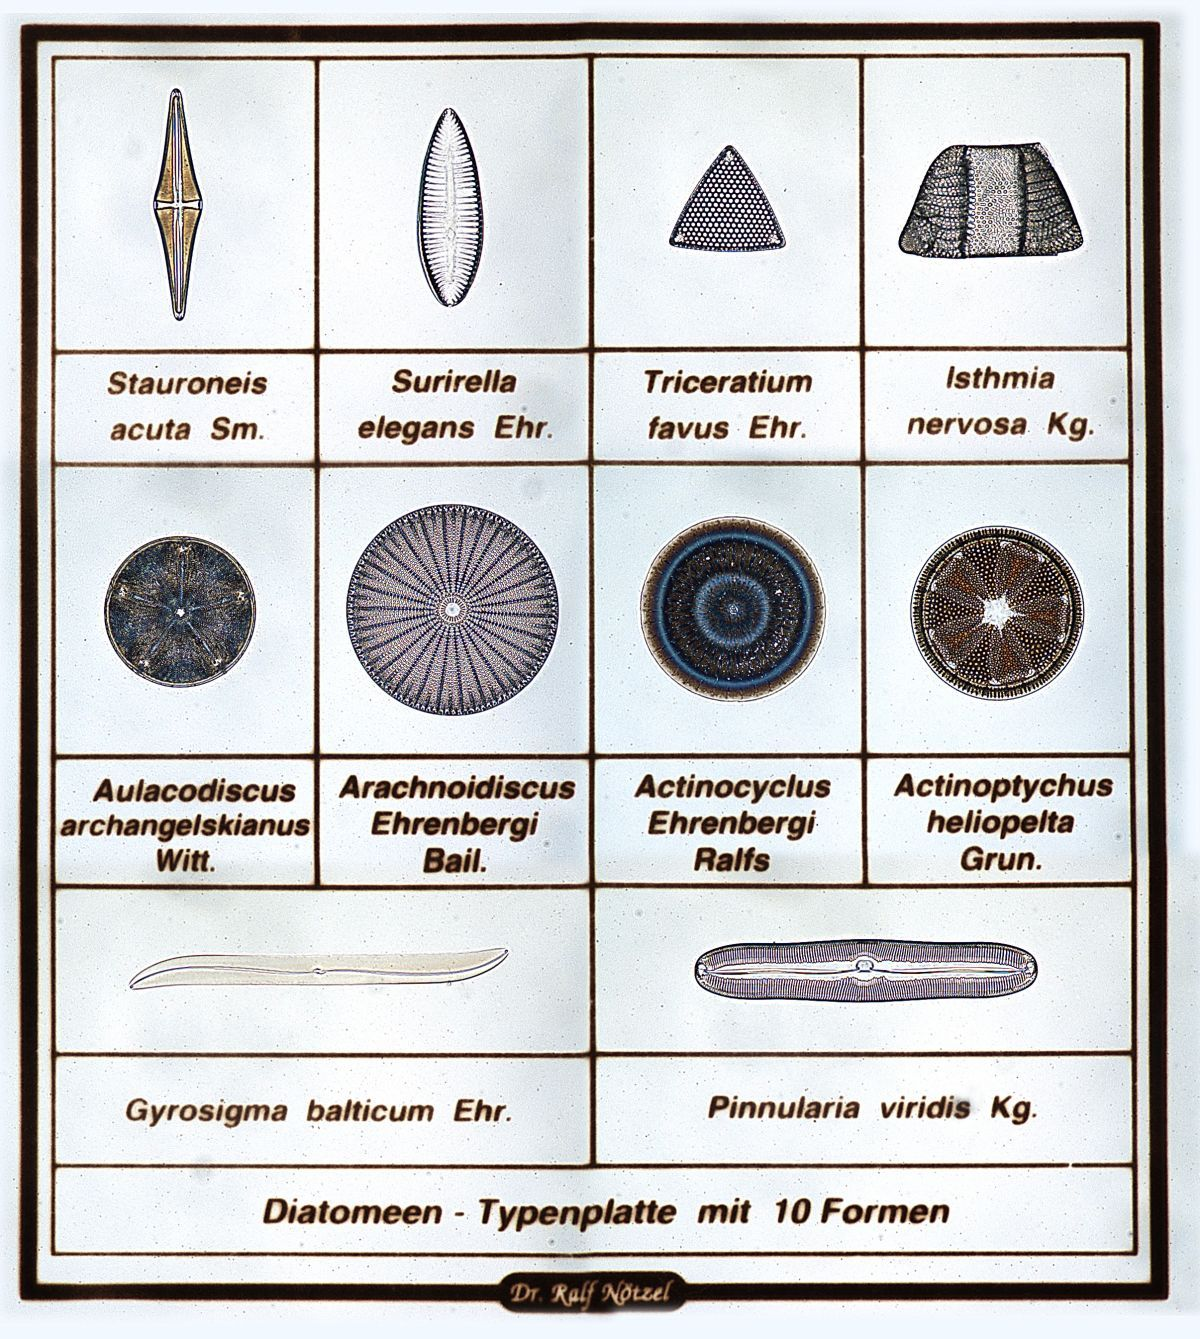 Diatoms are mostly asexual members of the phytoplankton